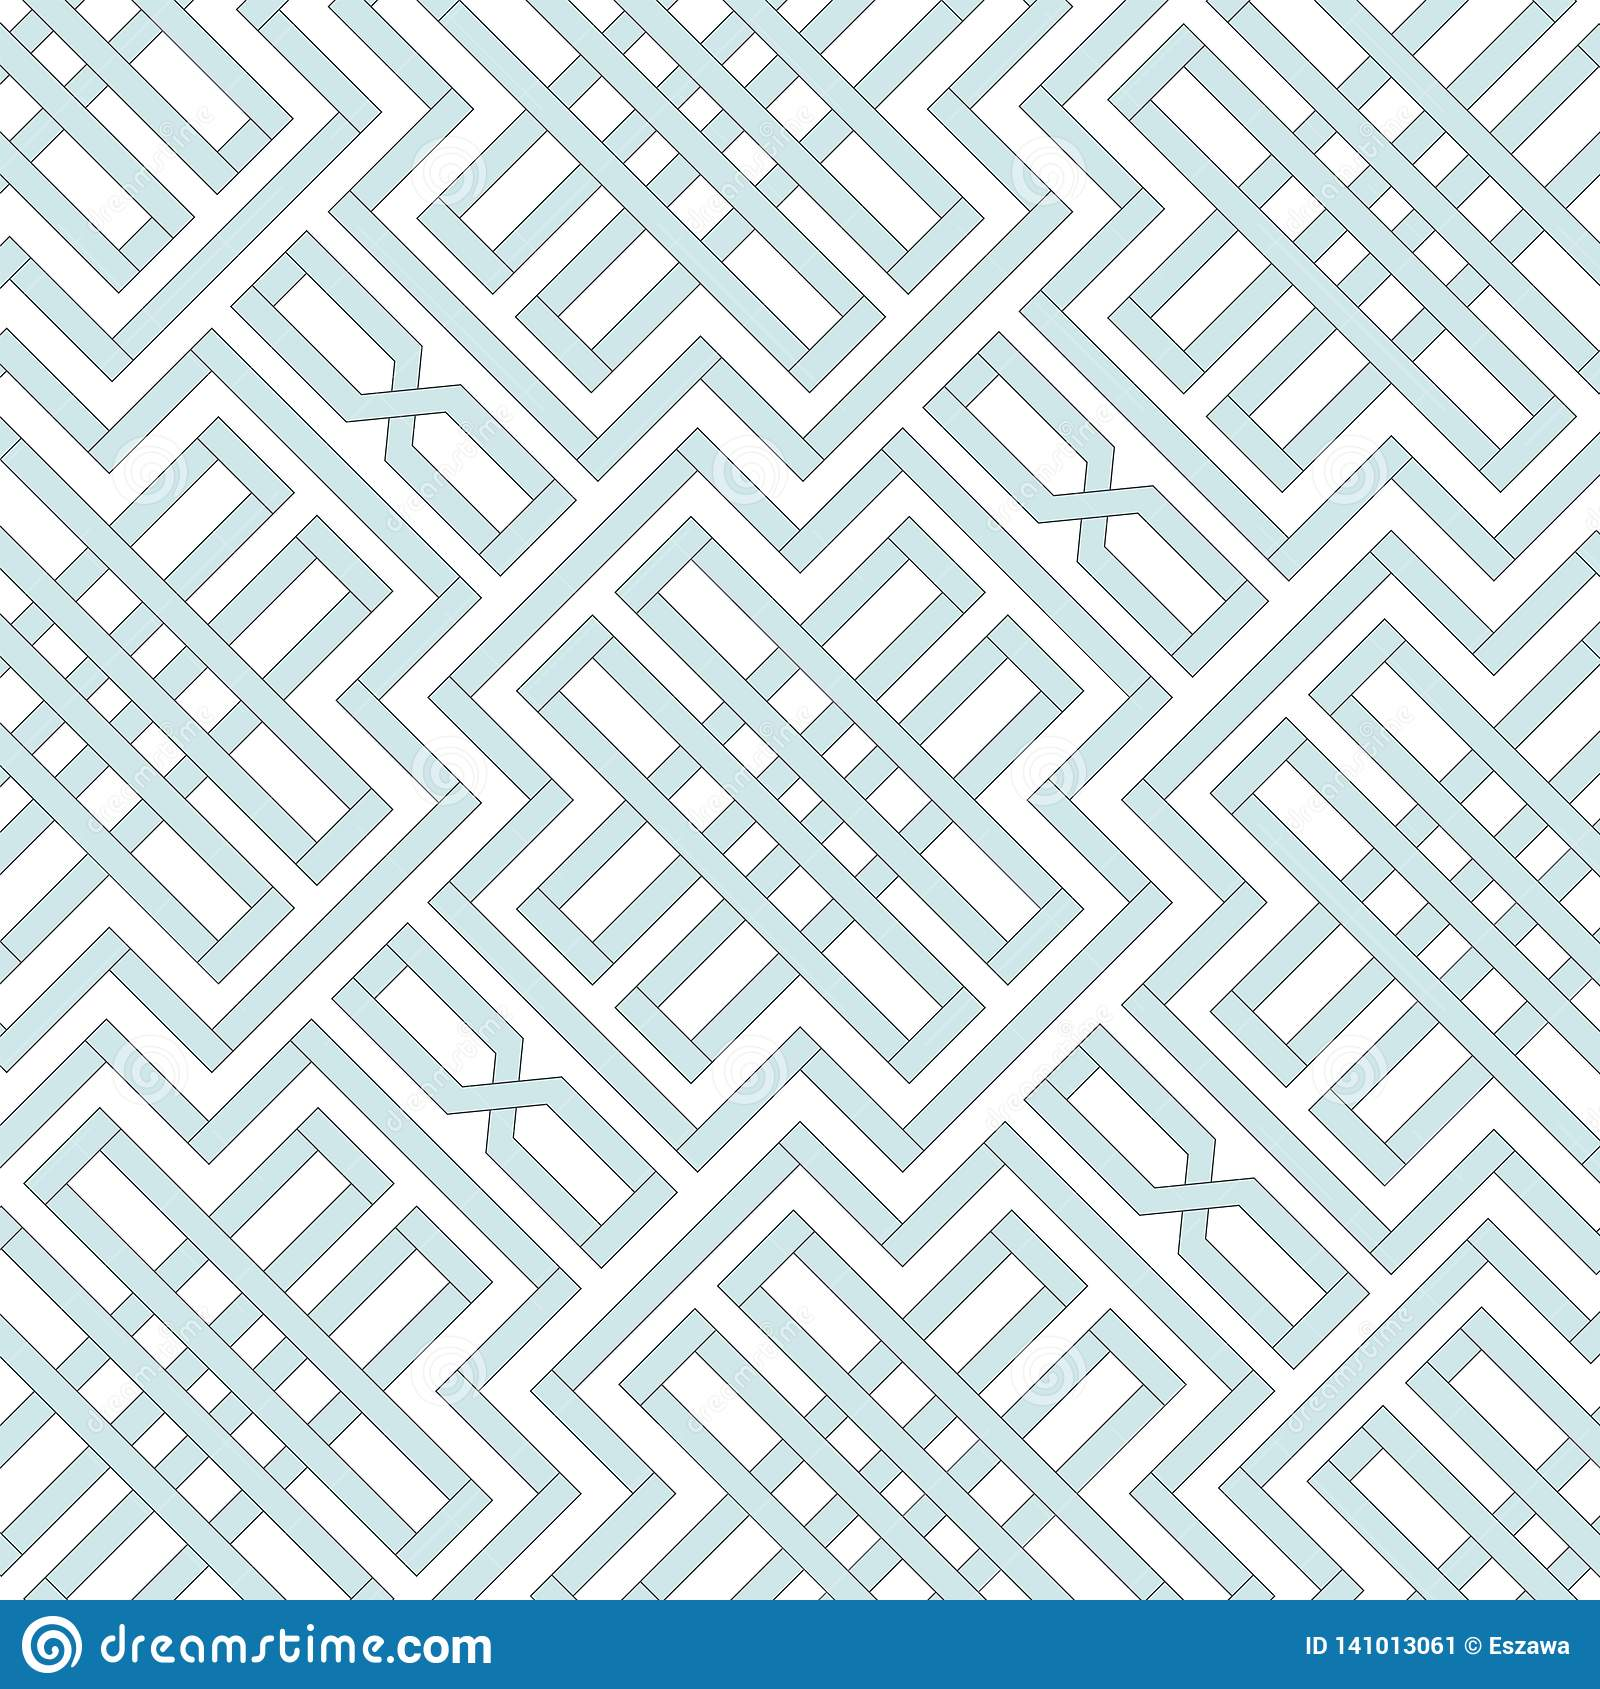 Retro repetitive wallpaper - Vintage vector pattern